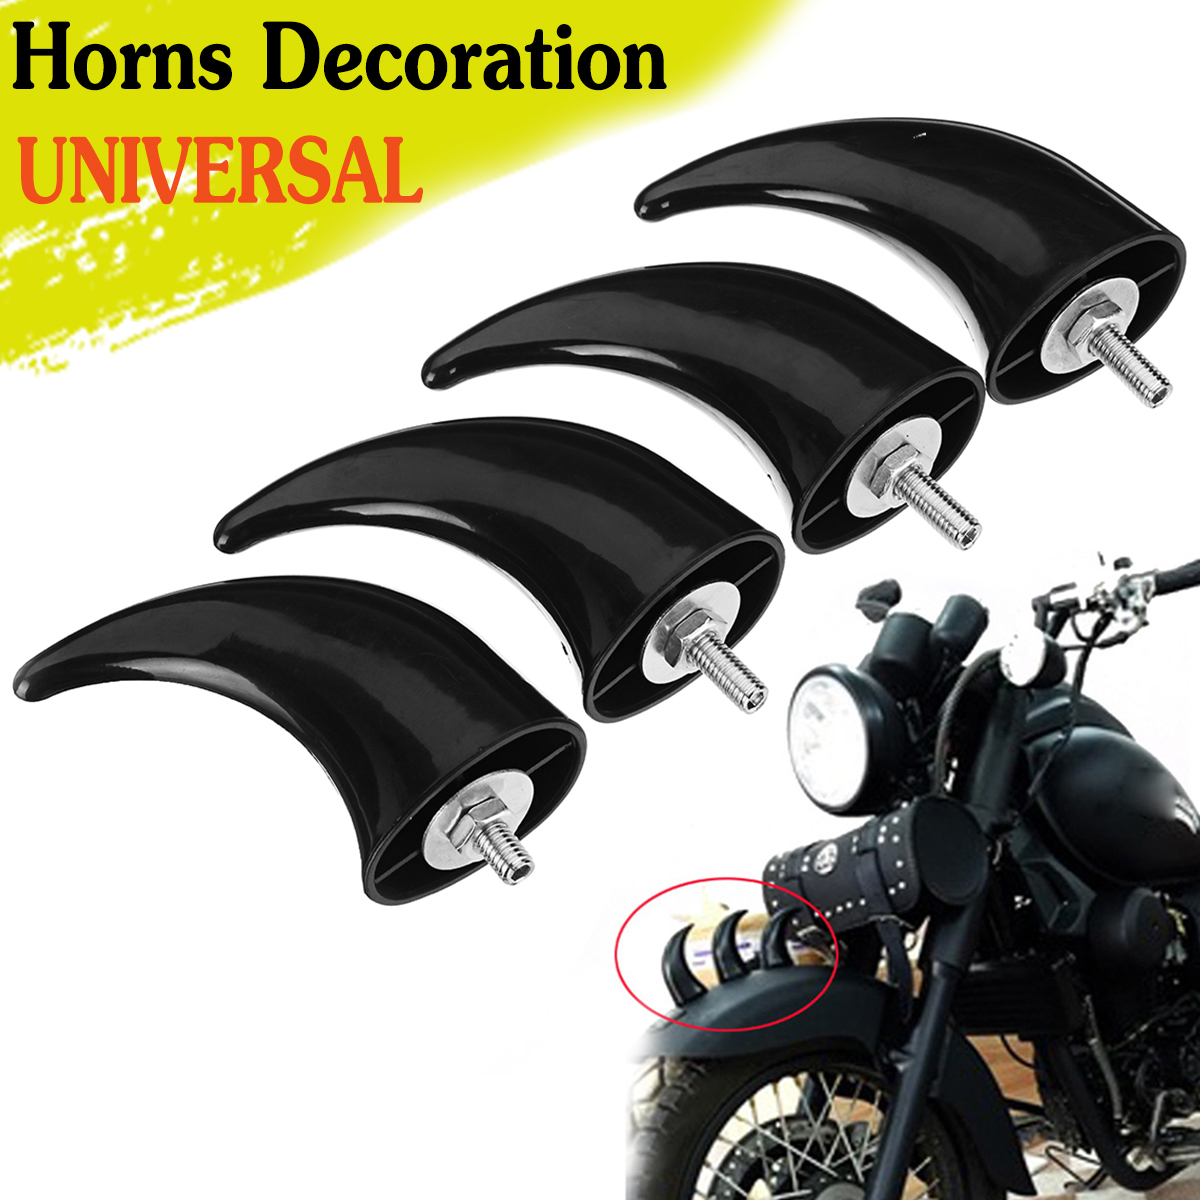 4pcs Front Fender Horns Decoration For Universal Motorcycle Chopper Bobber Touring Cafe Racer Custom